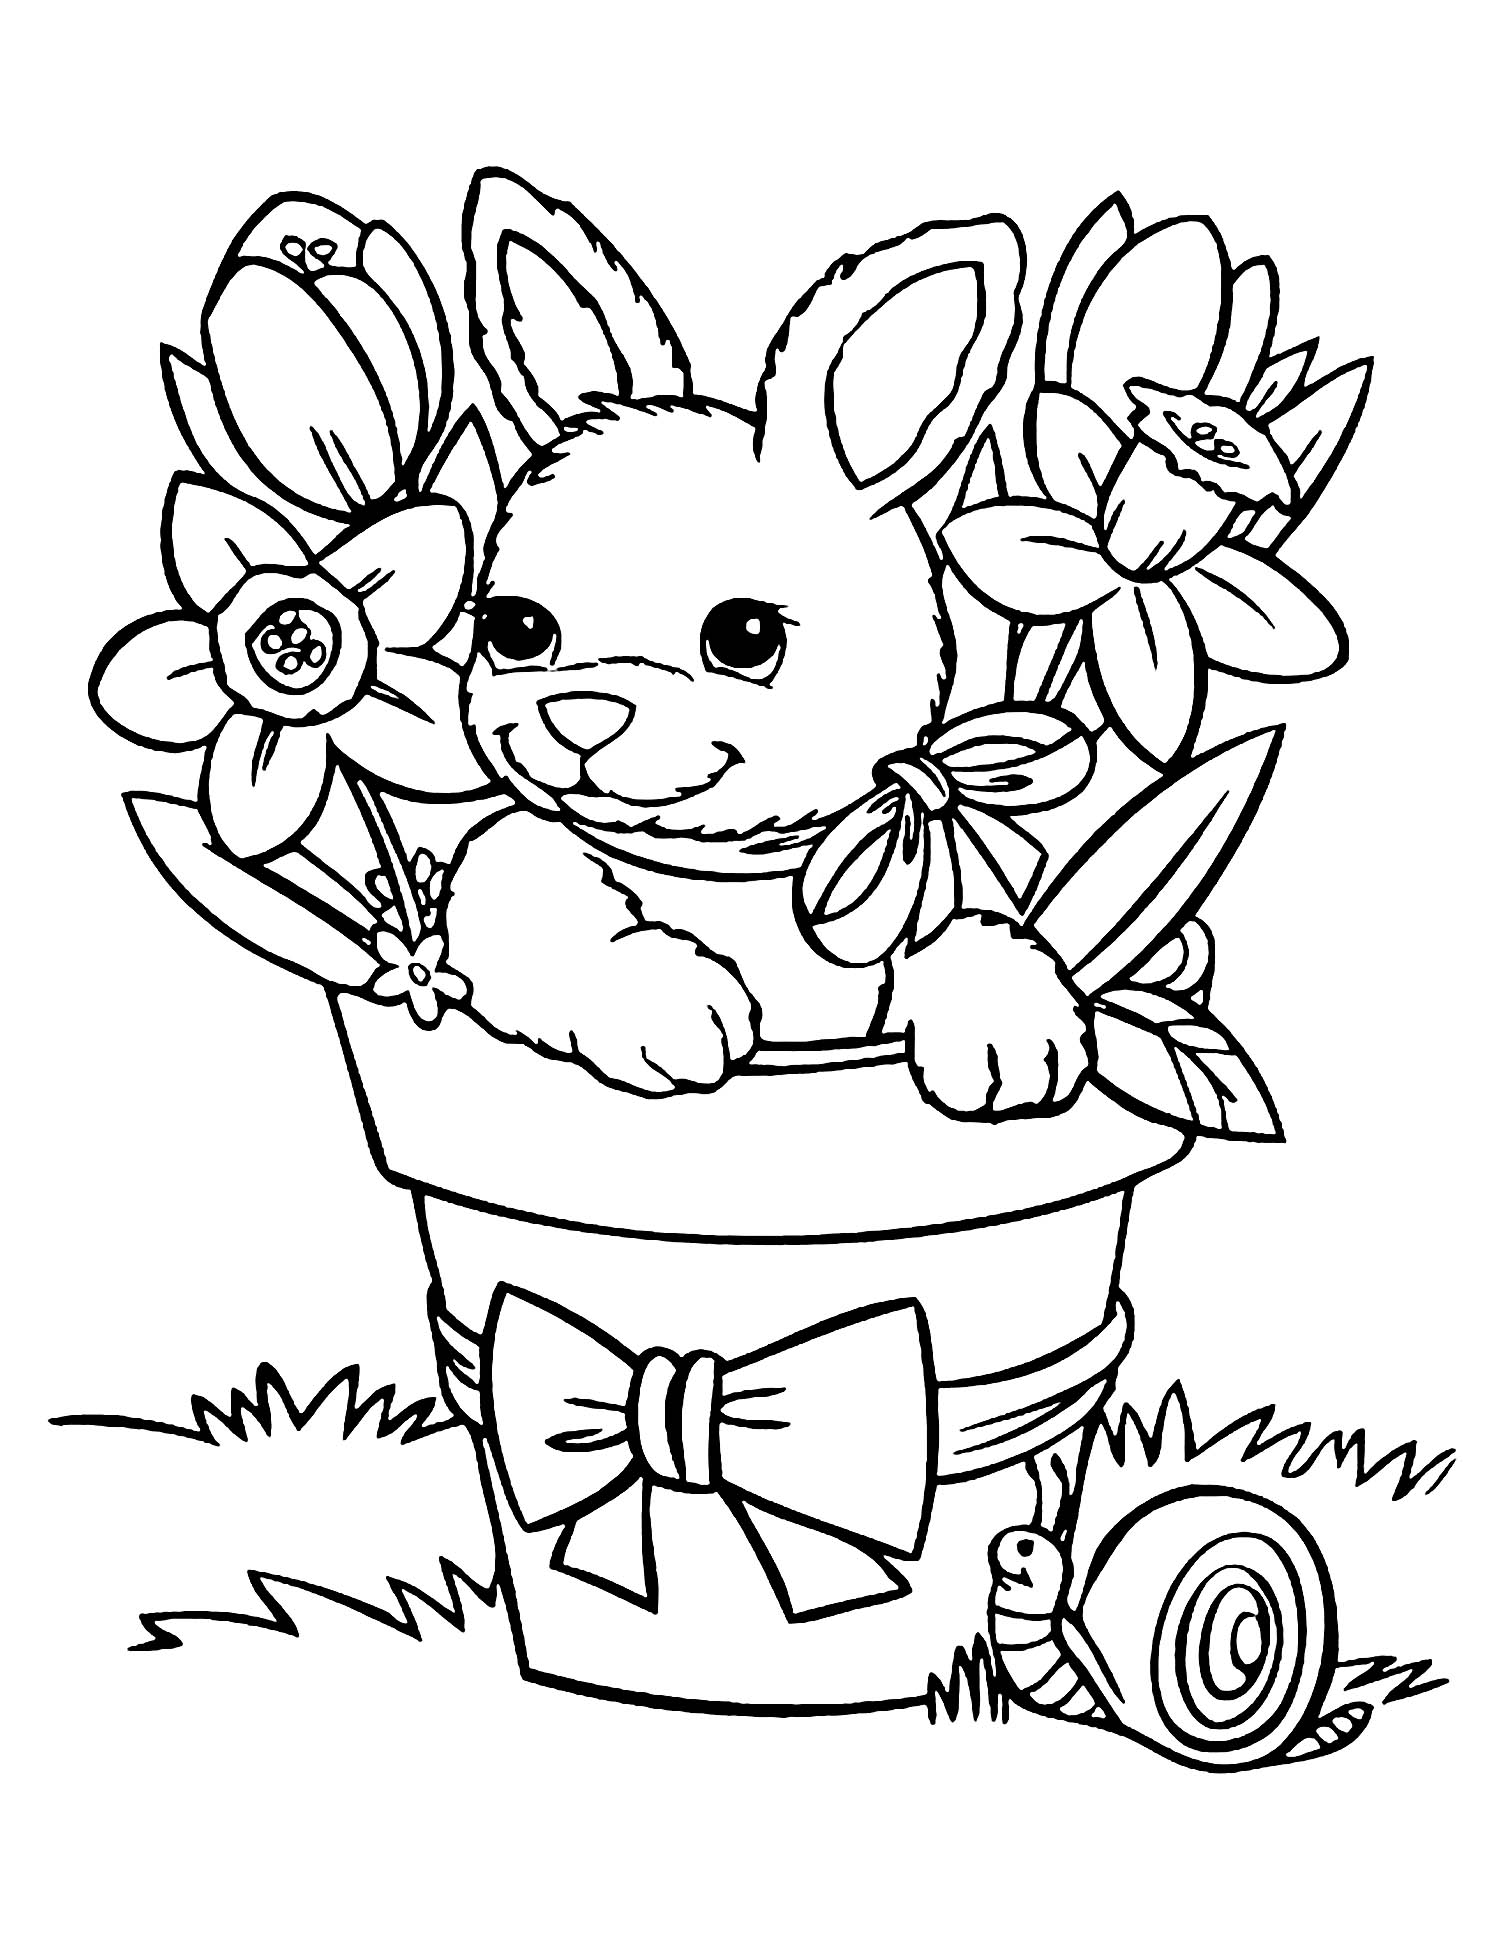 coloring pages of a bunny bunny coloring pages best coloring pages for kids bunny coloring pages a of